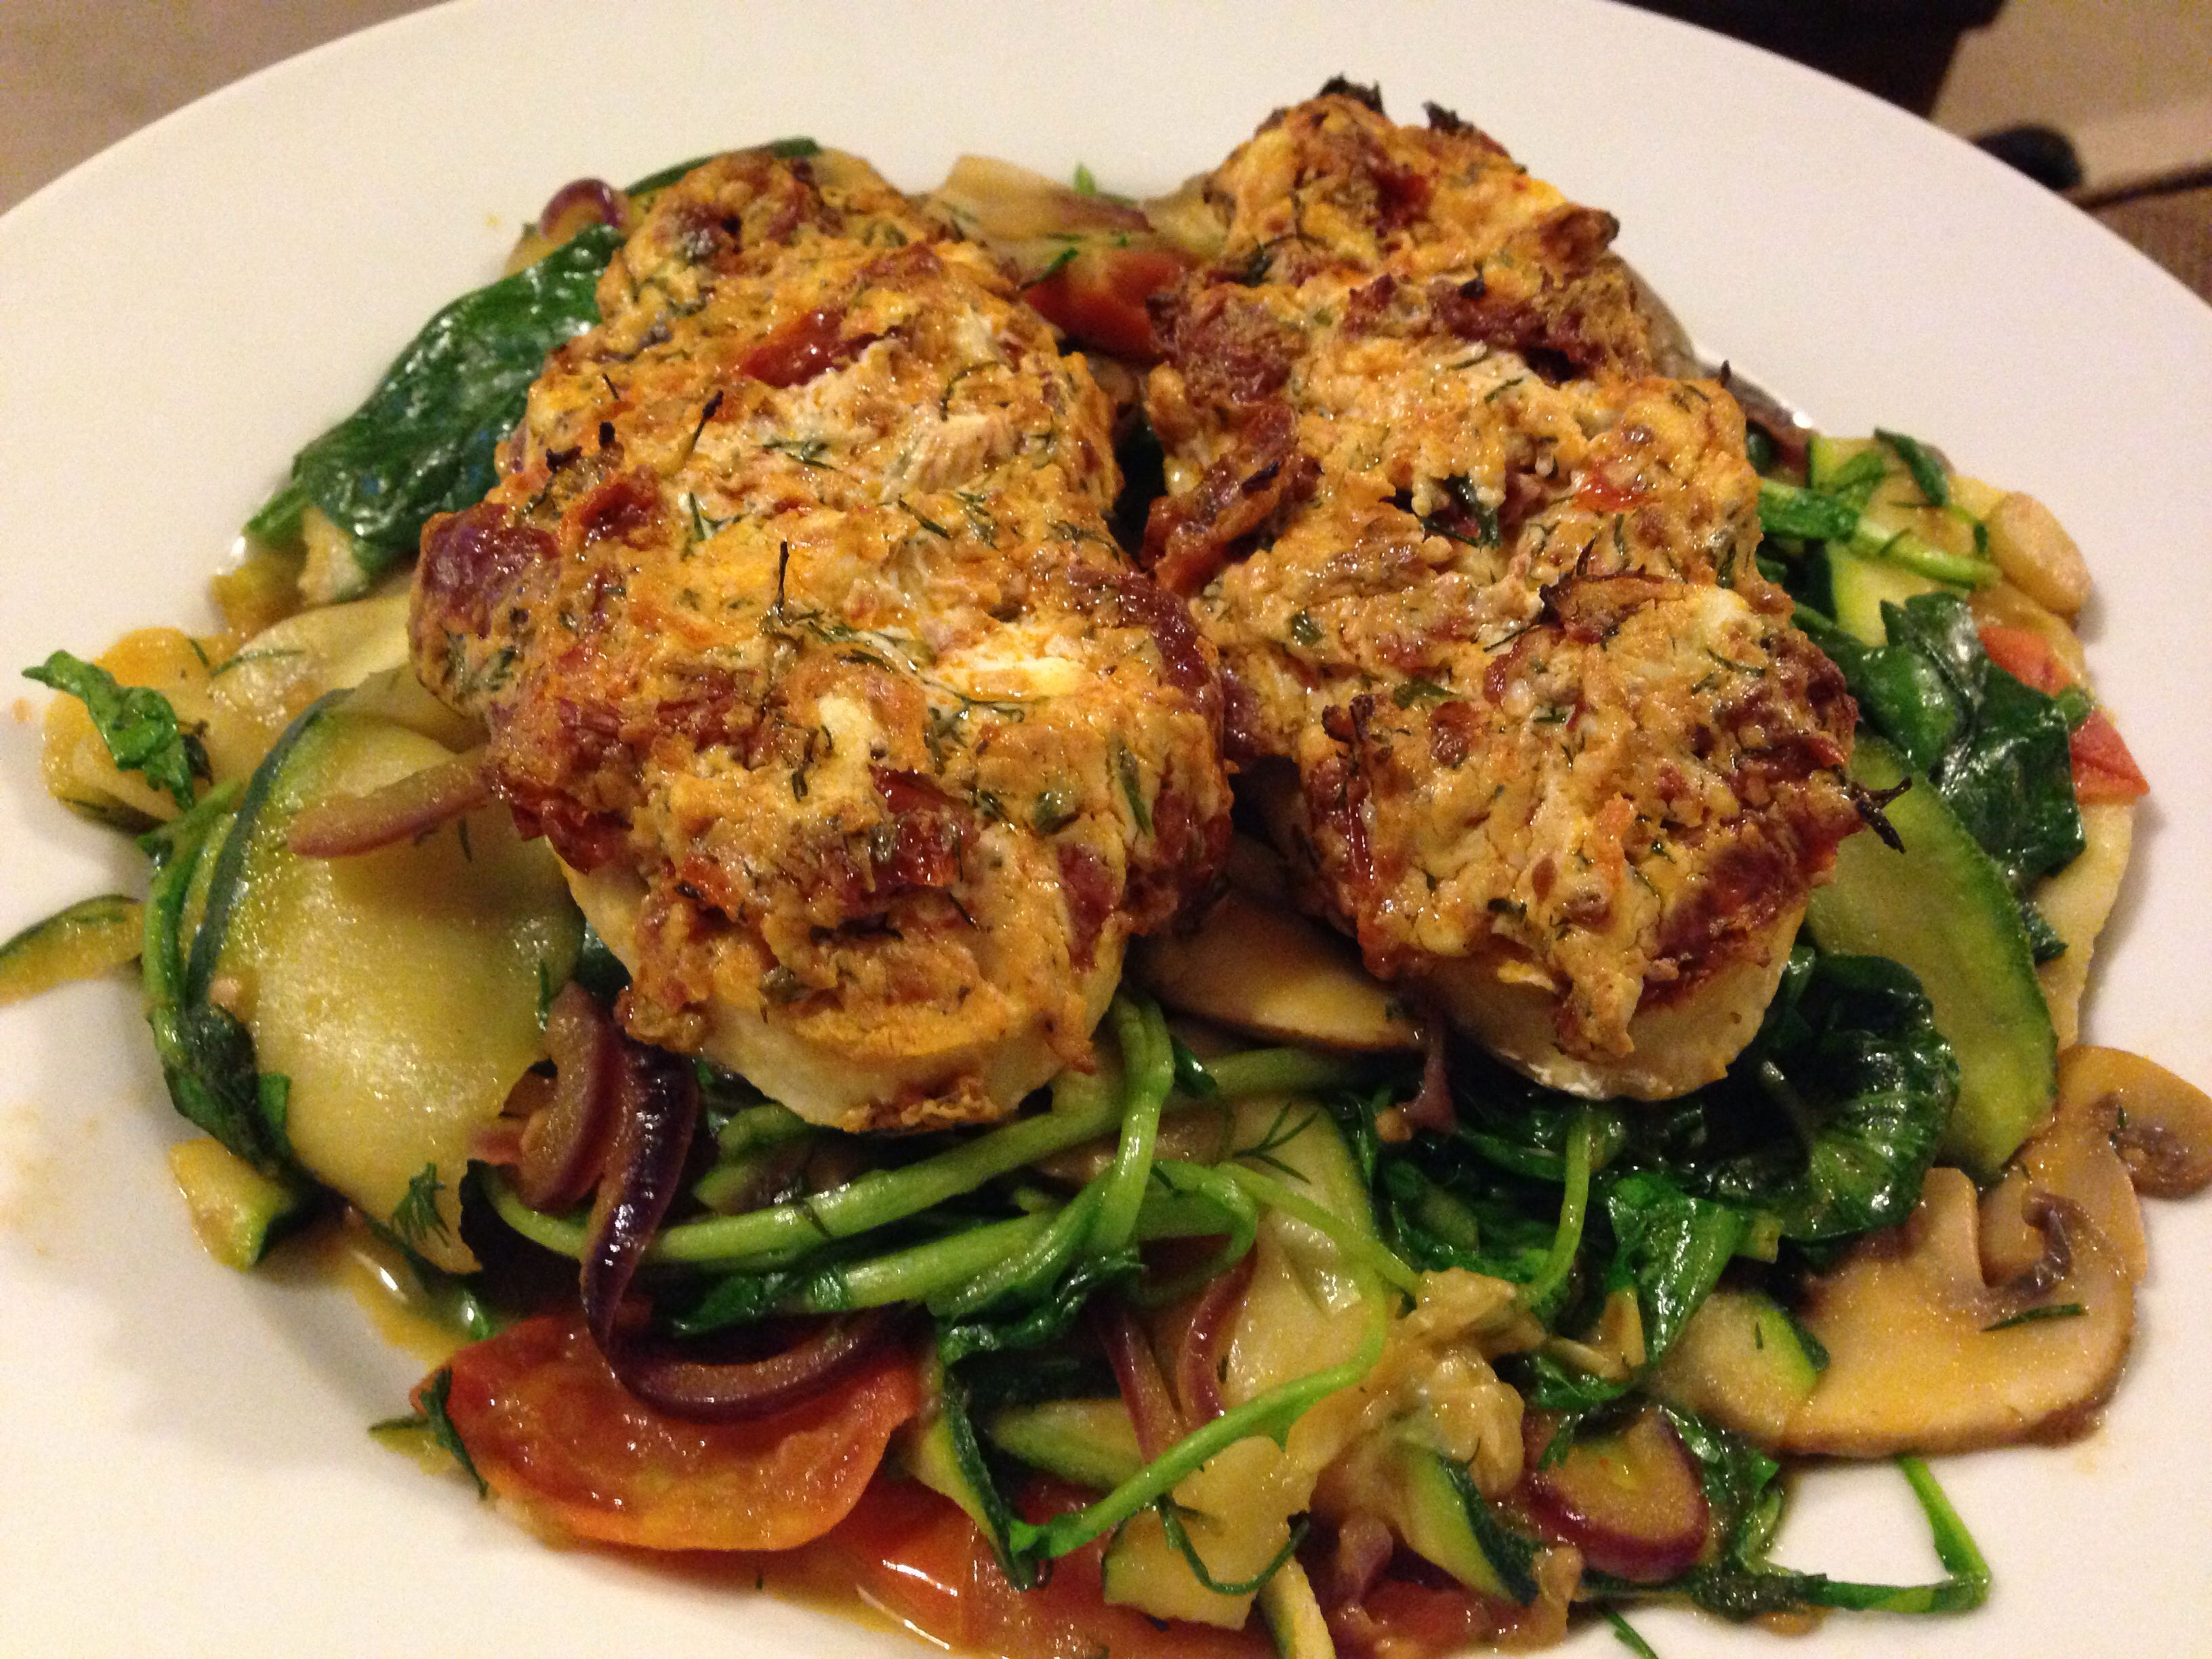 Quorn chicken fillets with courgette tagliatelle  Tasty, low fat and low carb